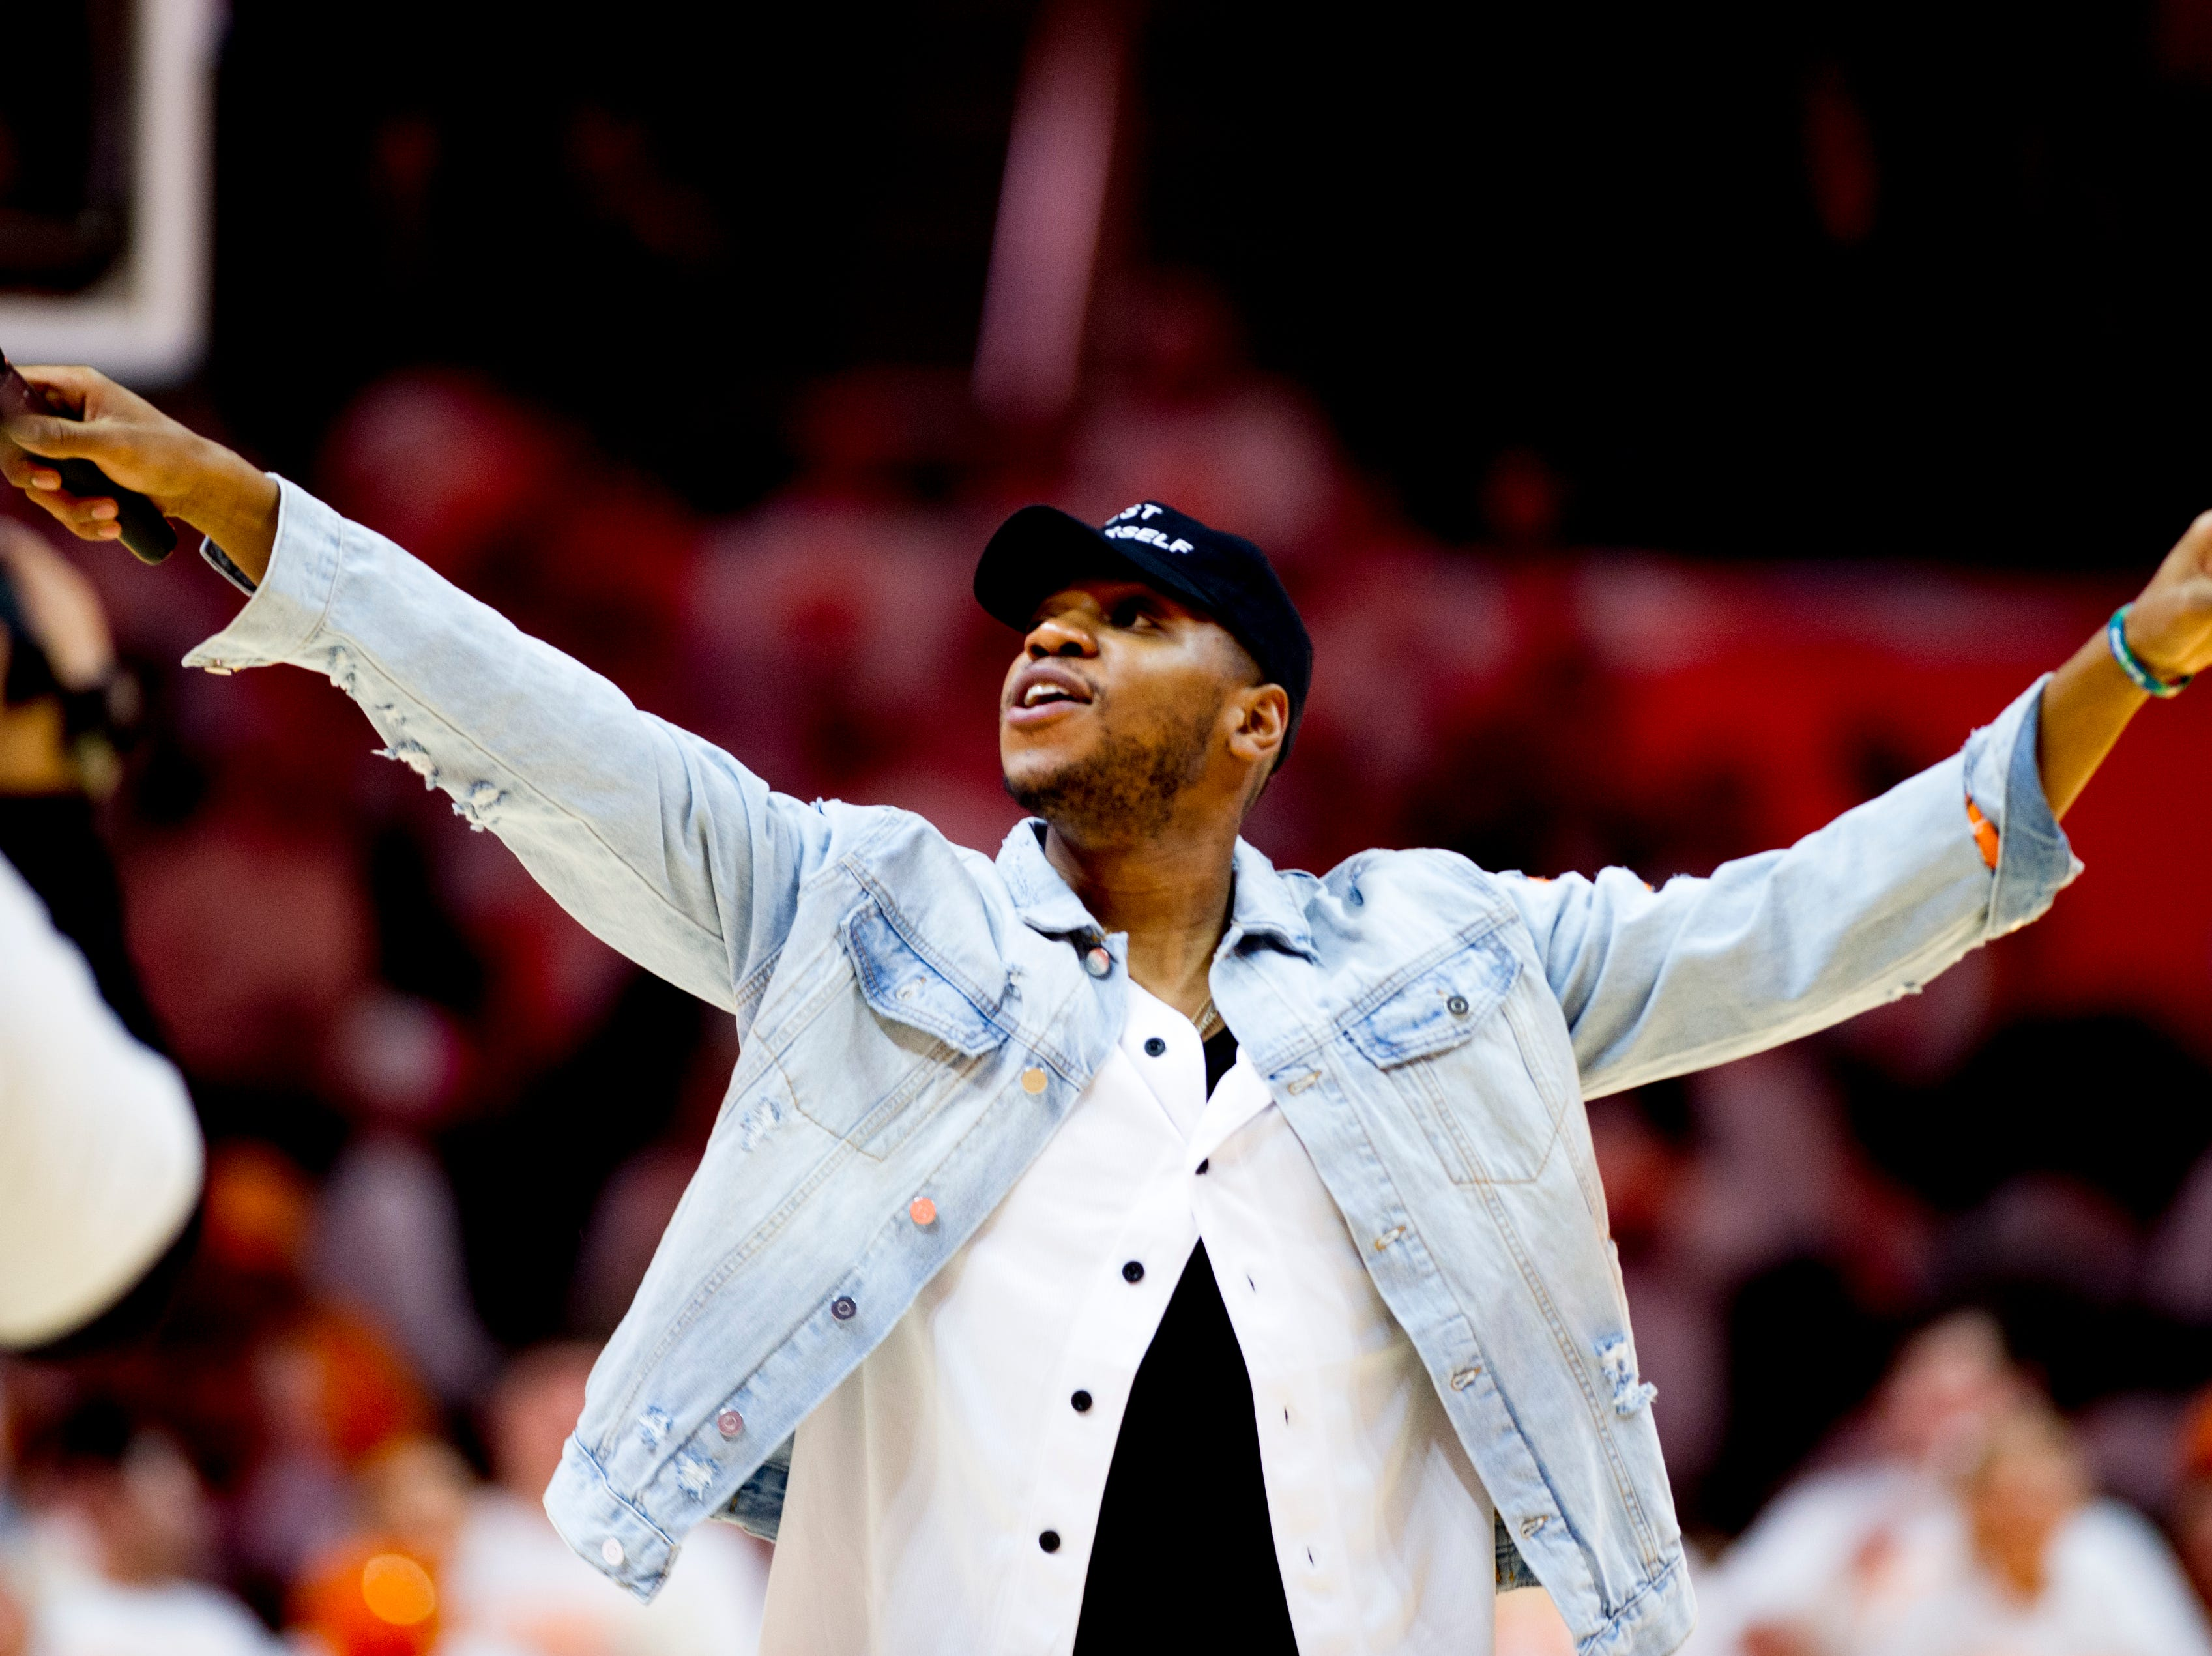 Chris Blue performs before the game at Thompson-Boling Arena in Knoxville, Tennessee on Tuesday, February 19, 2019.